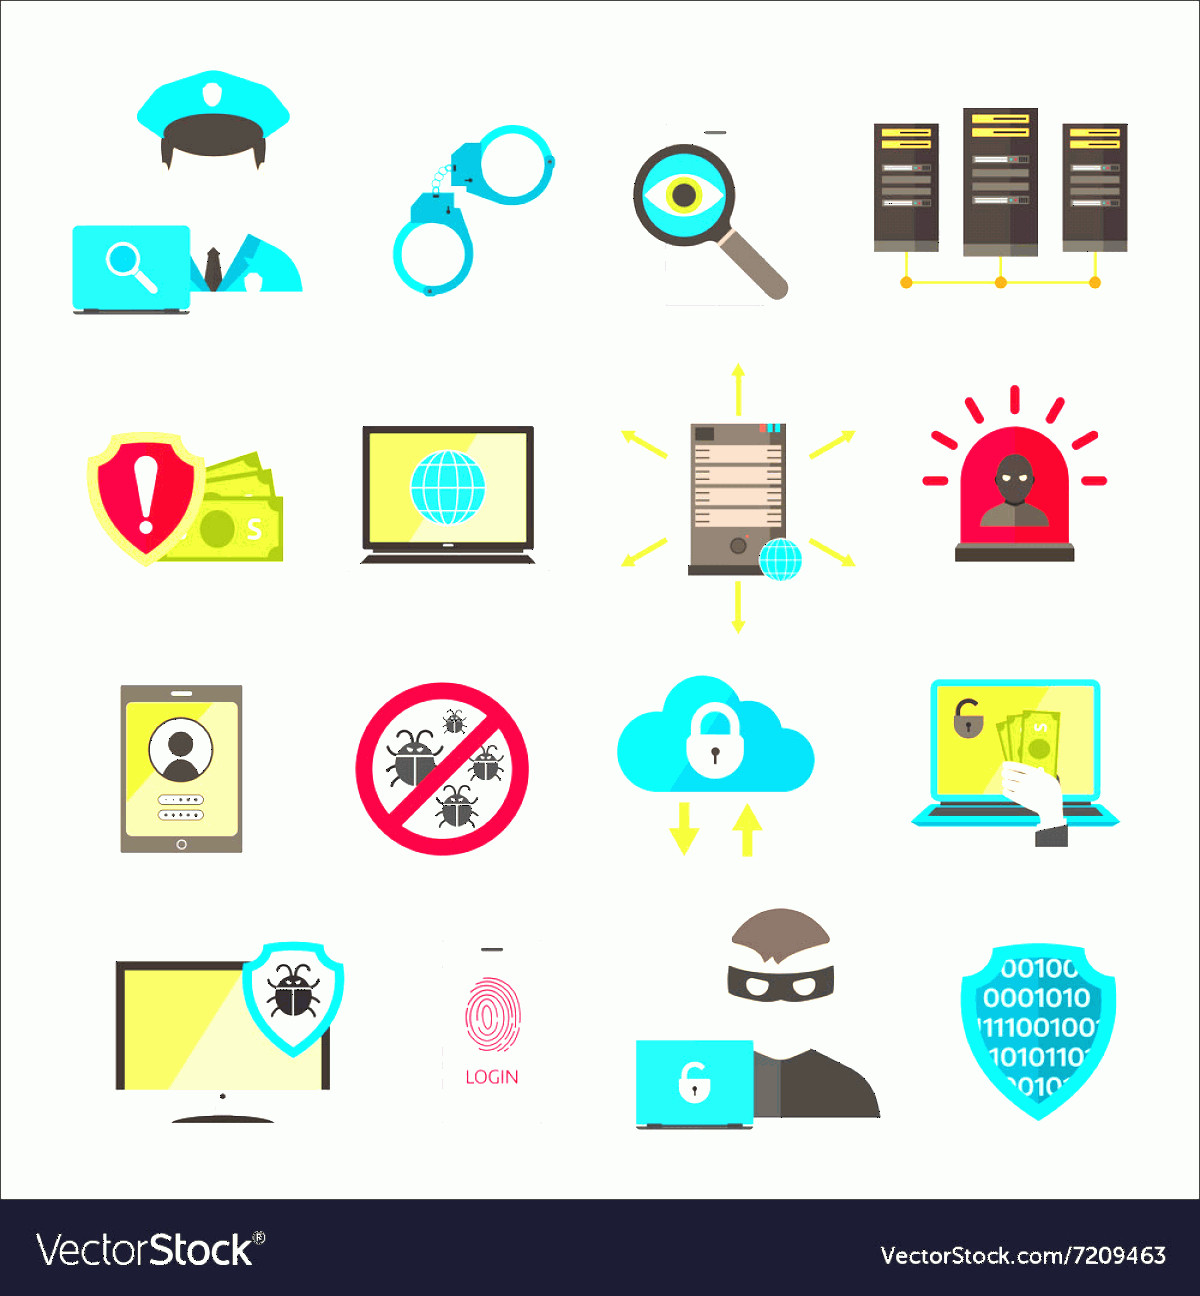 Multi-Vector Attack Plans: Internet Safety Icons Virus Cyber Attack Vector